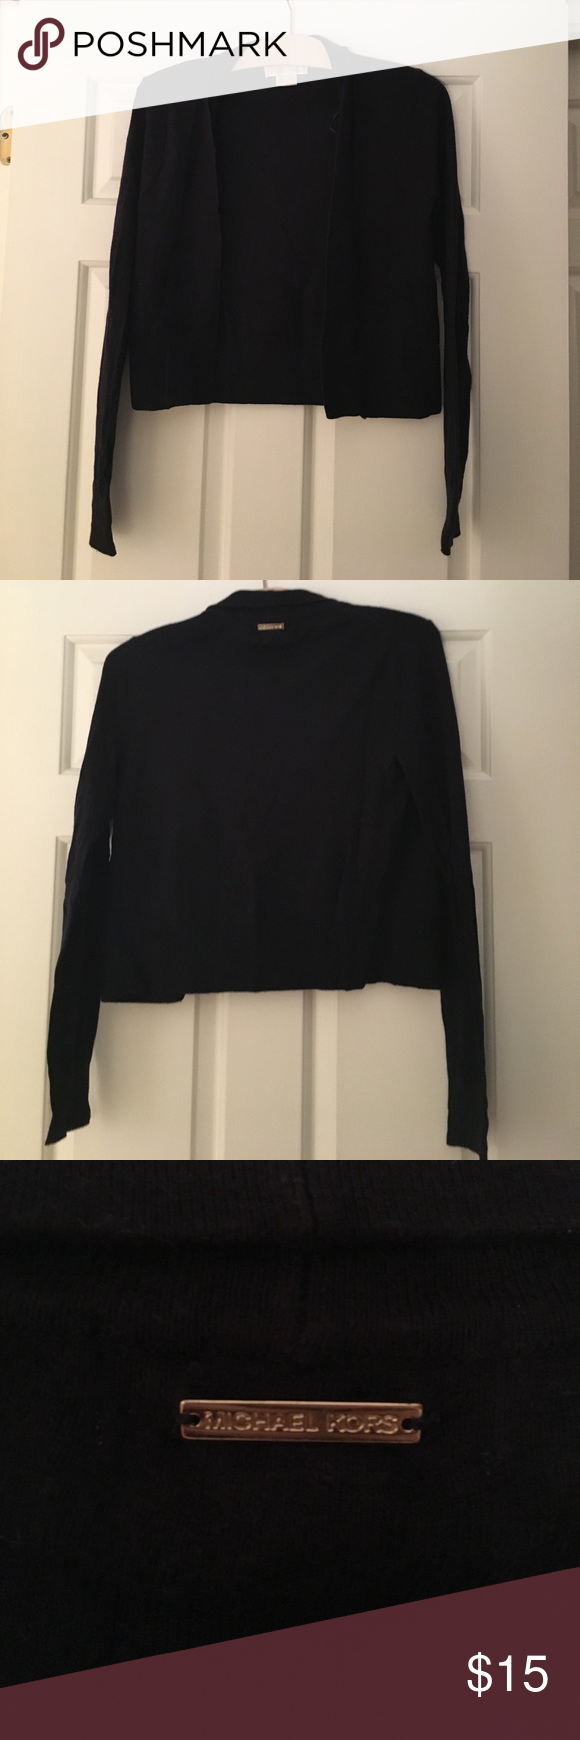 Navy blue Michael Kors cropped sweater | Dark navy blue, Michael ...